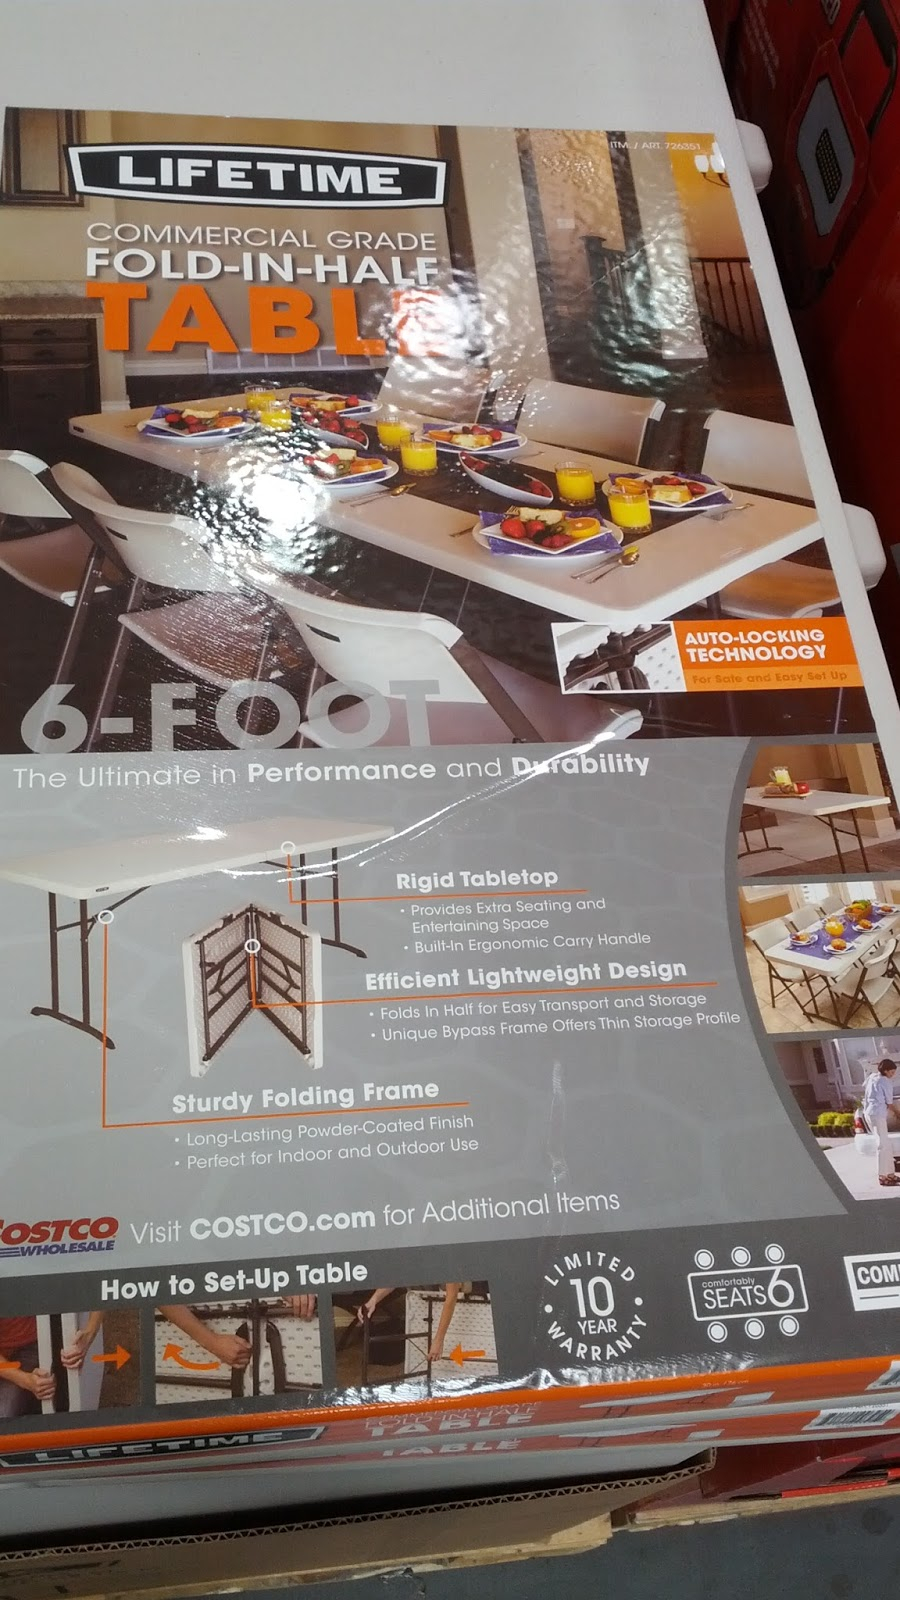 Lifetime Commercial Grade 6 Ft Fold In Half Table Model intended for dimensions 900 X 1600